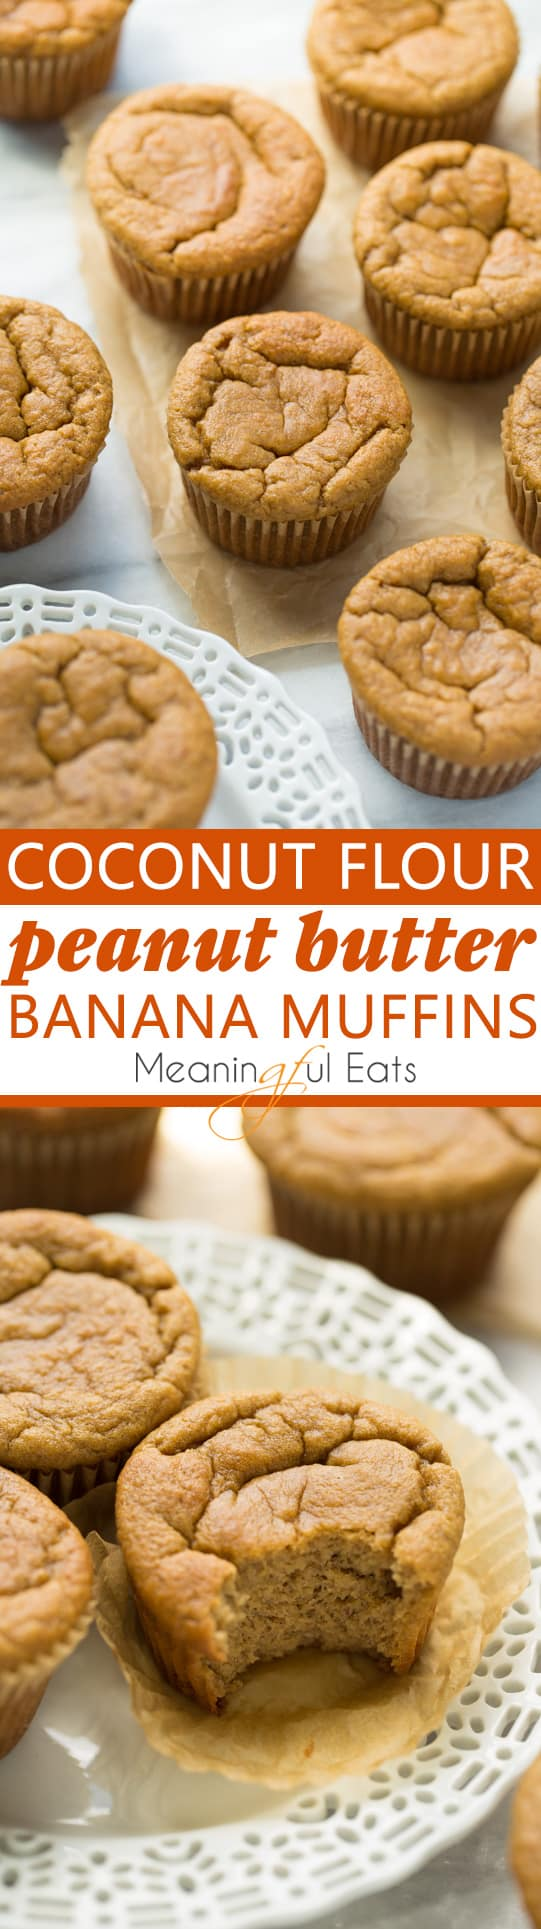 Coconut Flour Peanut Butter Banana Muffins! Easy, protein-rich muffins with a light and fluffy texture. Melt in your mouth delicious! (Gluten-Free)